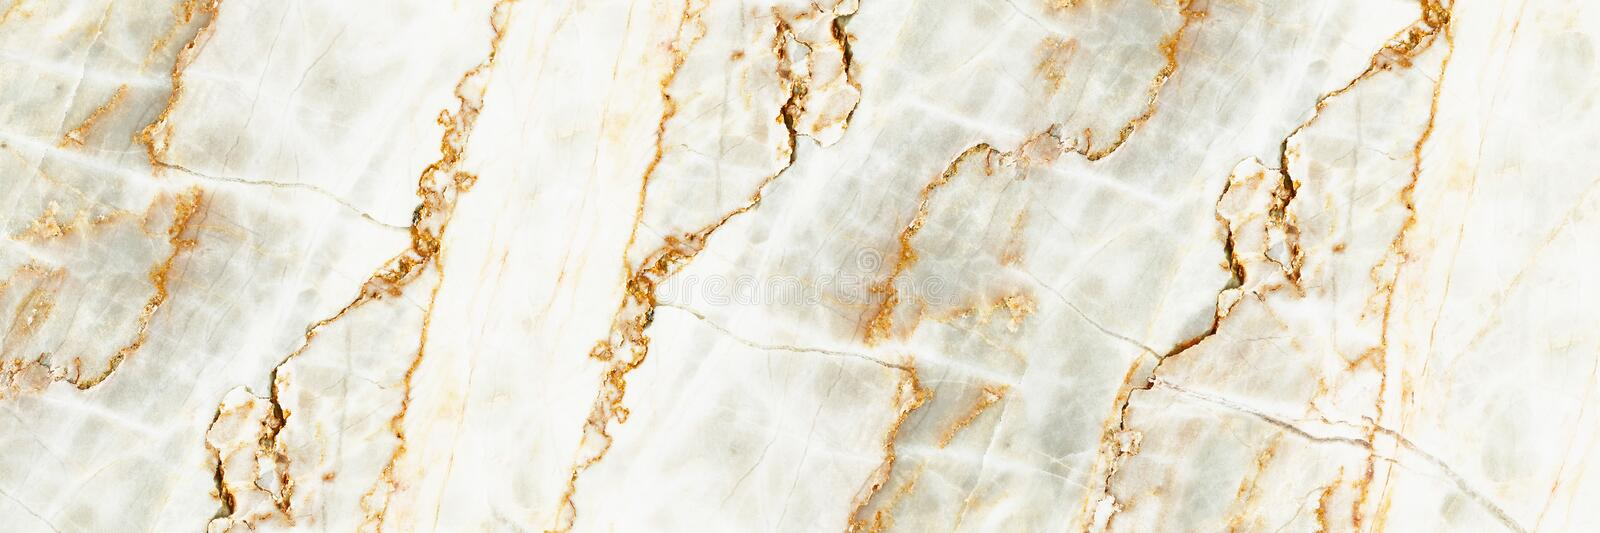 horizontal elegant natural marble texture for pattern and background stock images